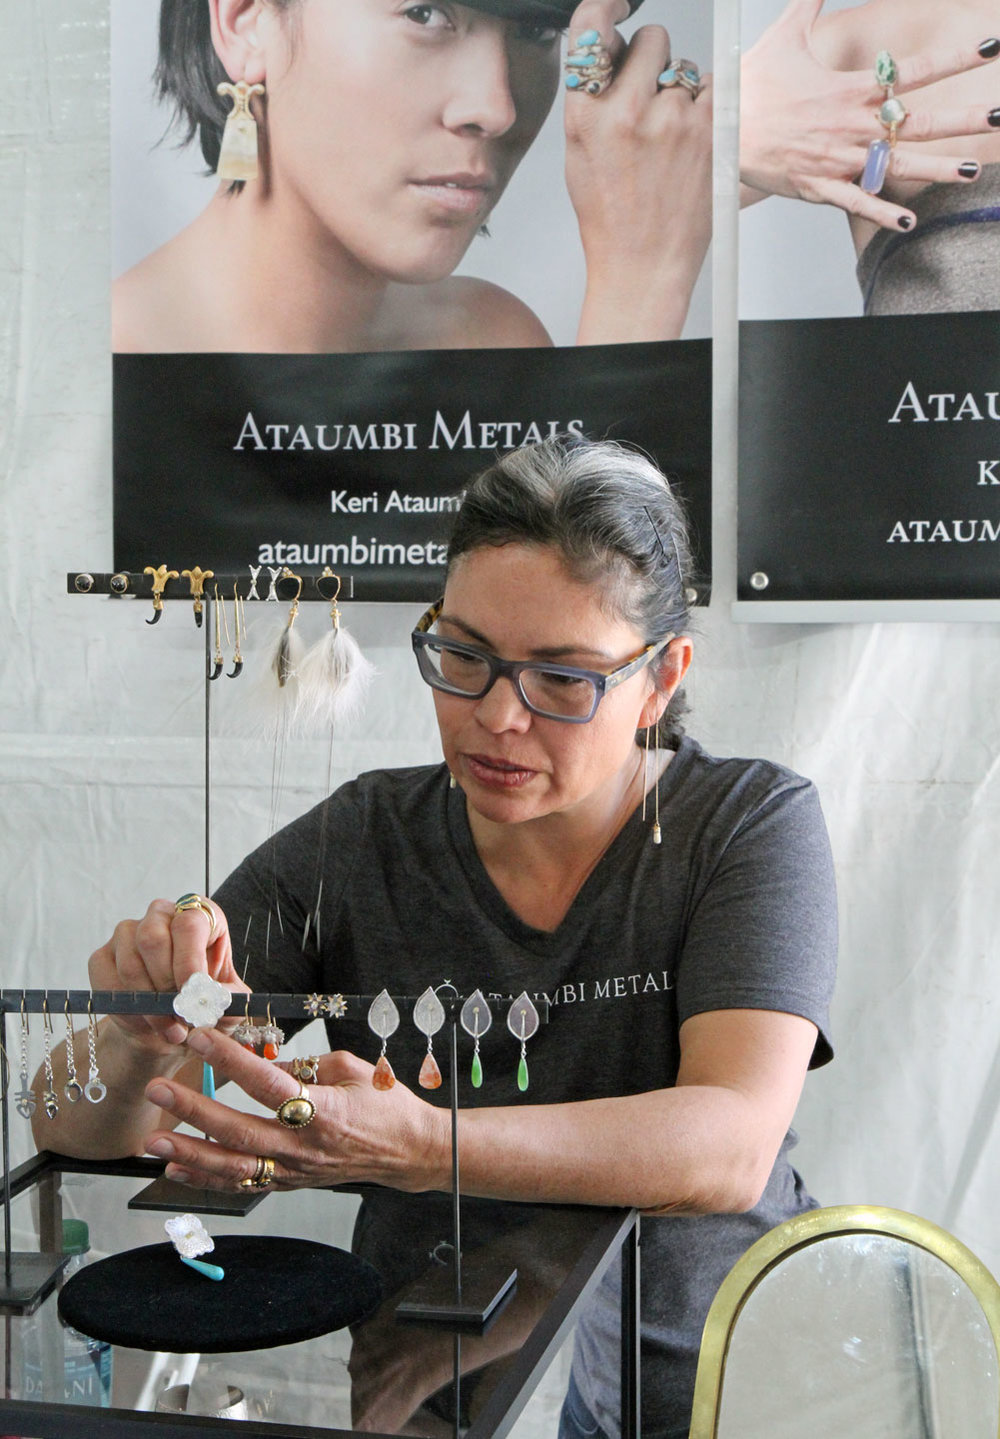 KERI ATAUMBI adjusting the display of several earrings at her booth. Ataumbi is a jeweler who blends the contemporary and traditional in her work, with pieces that range from the opulent to the minimalistic. She was recently the cover feature of Ornament Volume 40.1.   www.ornamentmagazine.org/shop/ornament-print-edition-volume-401